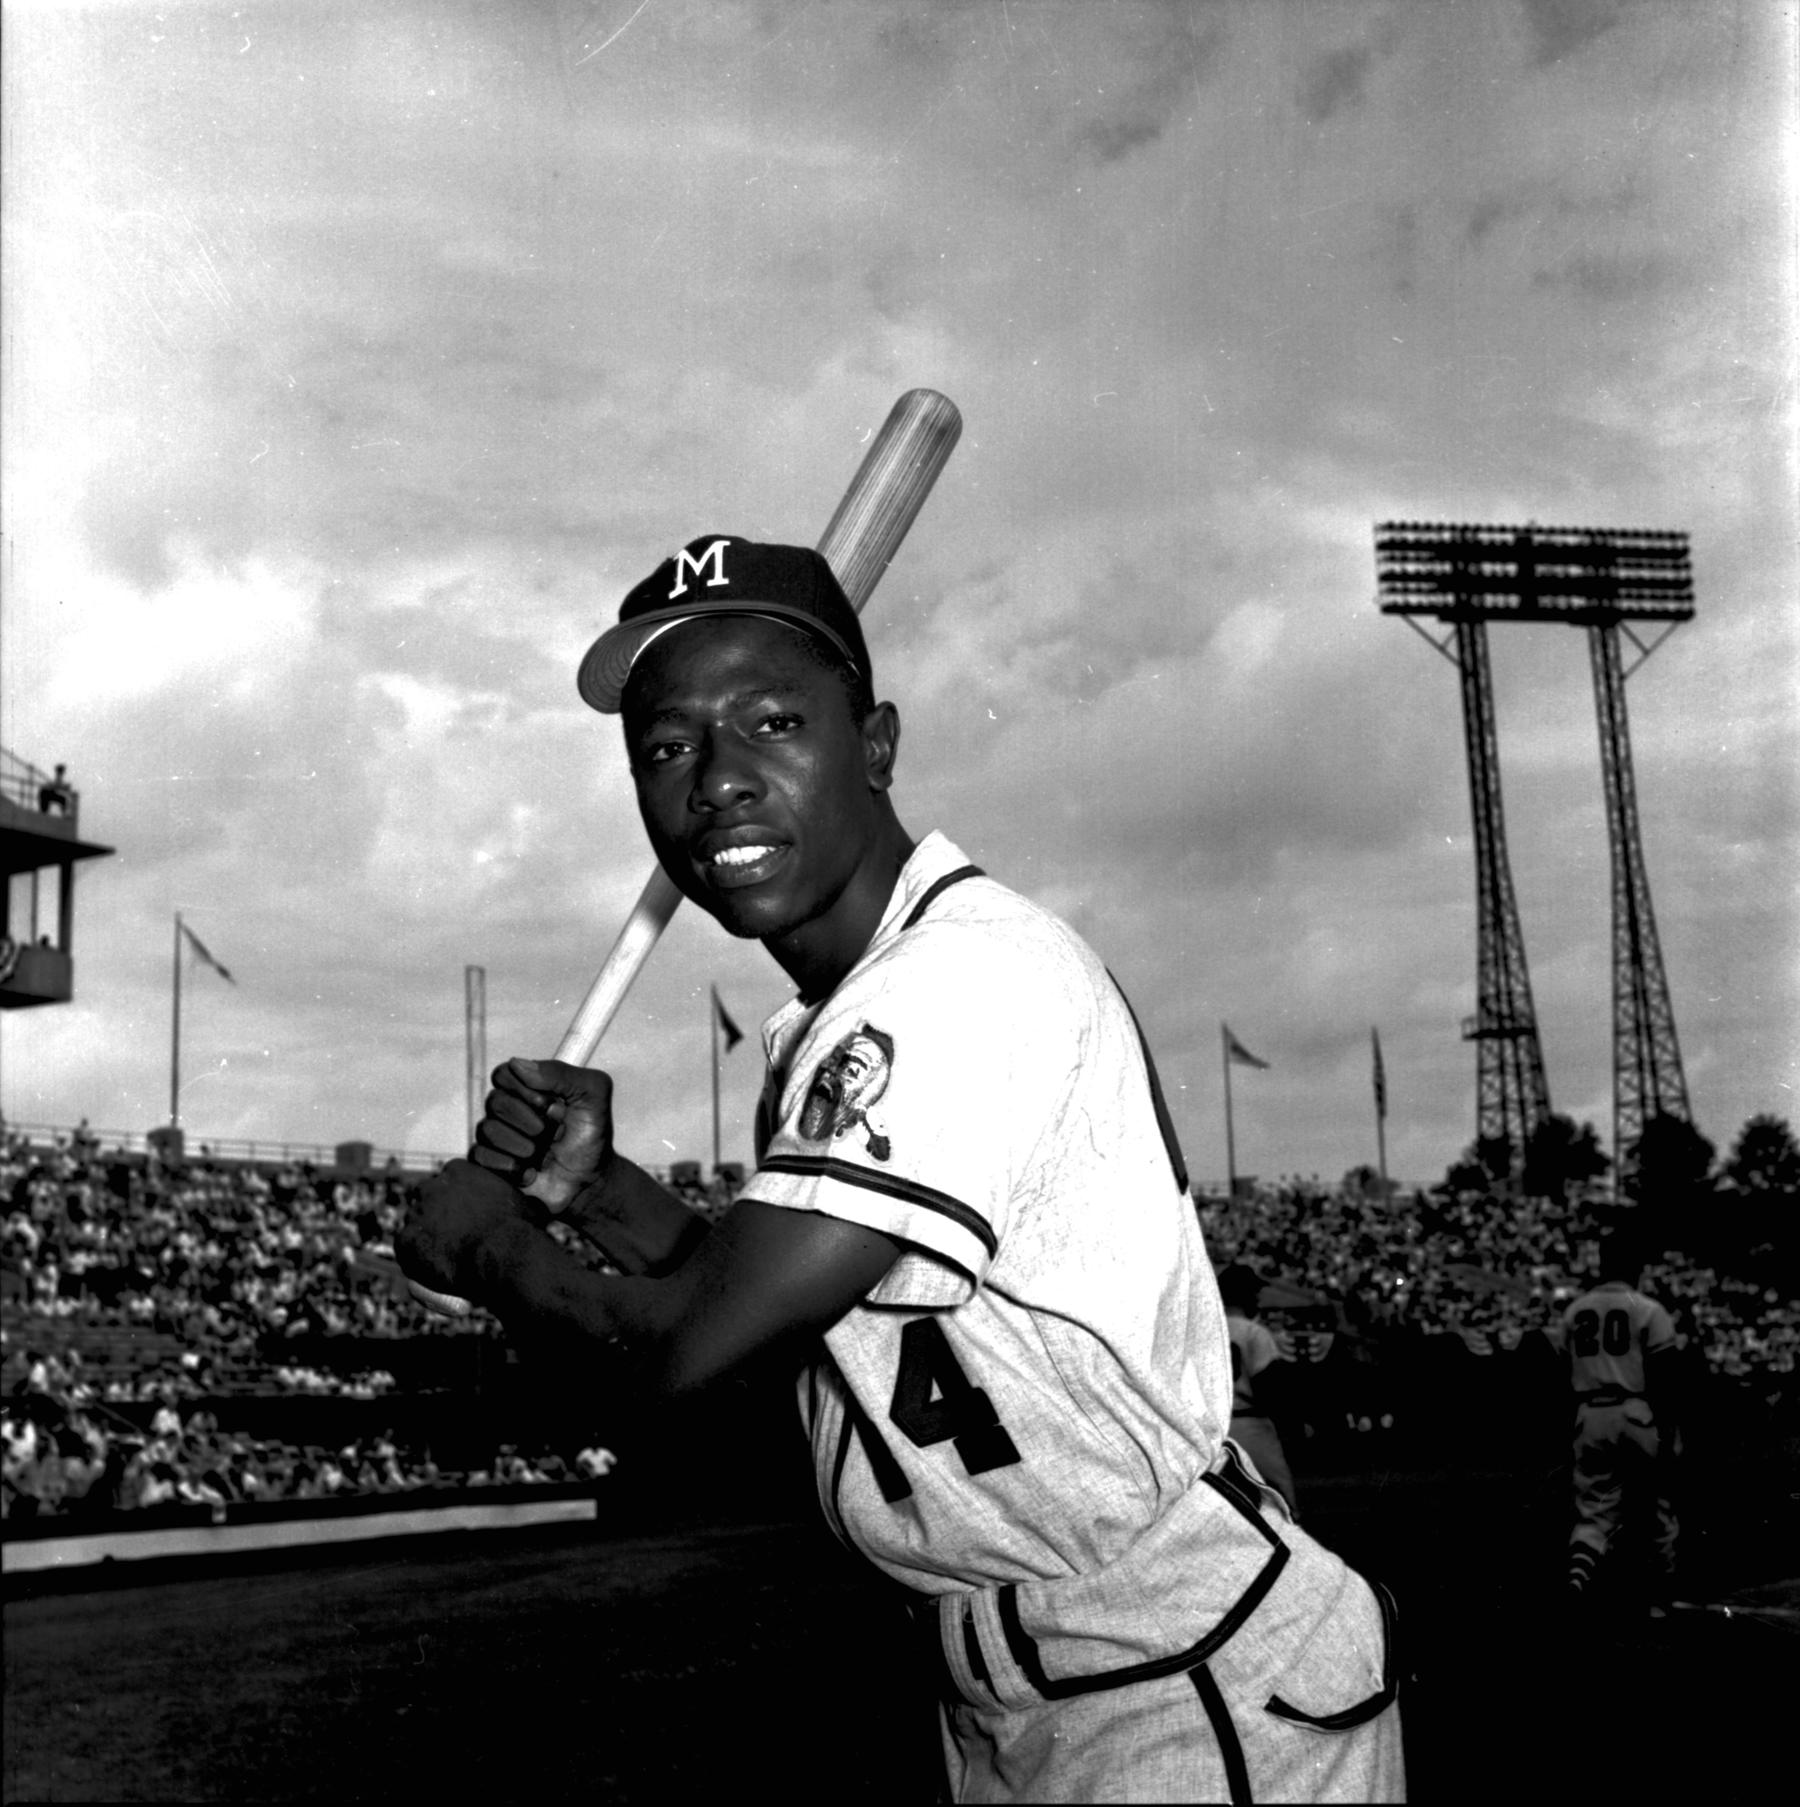 Hank Aaron of the Milwaukee Braves posed with a bat. BL-2059-69a (Don Wingfield / National Baseball Hall of Fame Library)